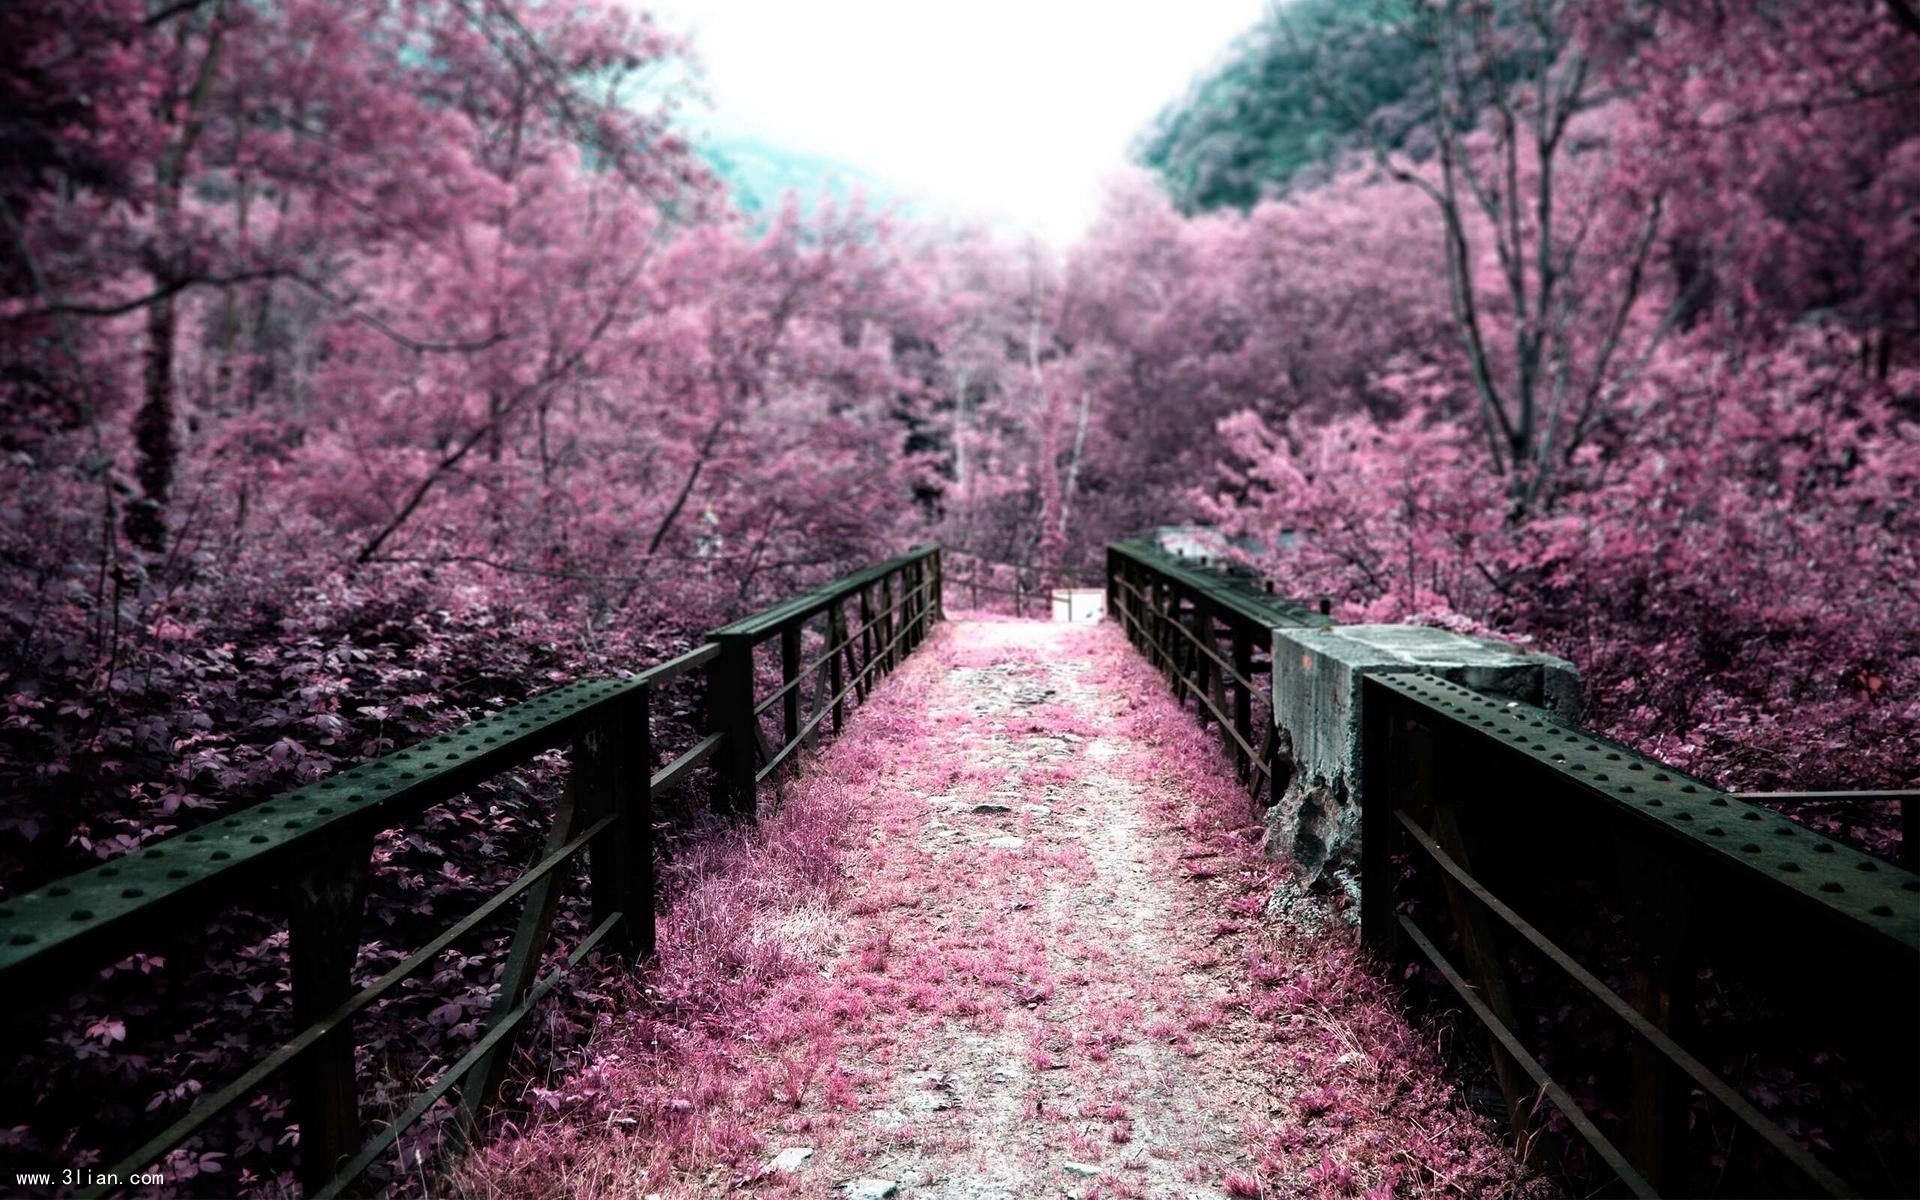 2016 05 08 Free Screensaver Cherry Blossom Pic 7846 Cool Pictures Of Nature Spring Wallpaper Cherry Blossom Wallpaper